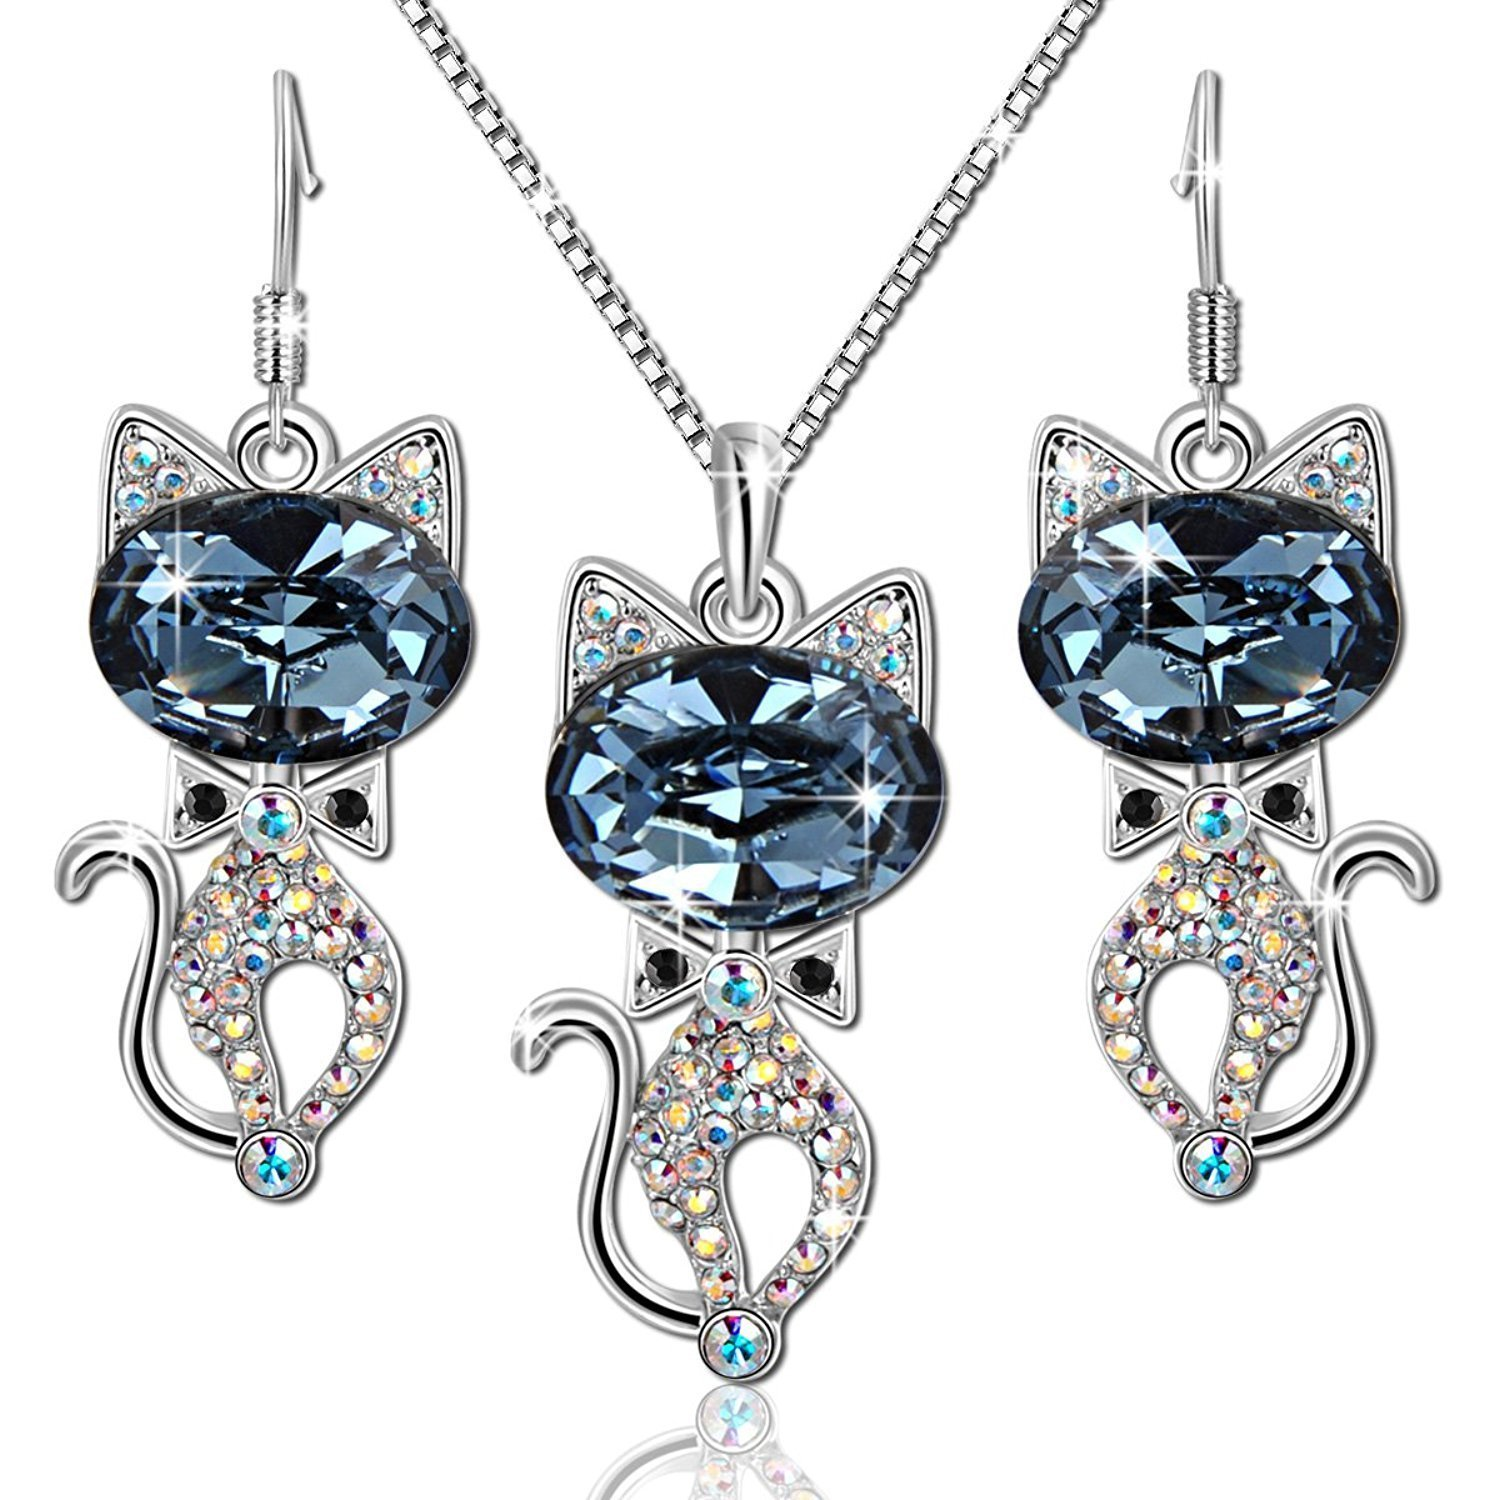 Bella Crystal Ring Chandelier: Swarovski Crystal Bella